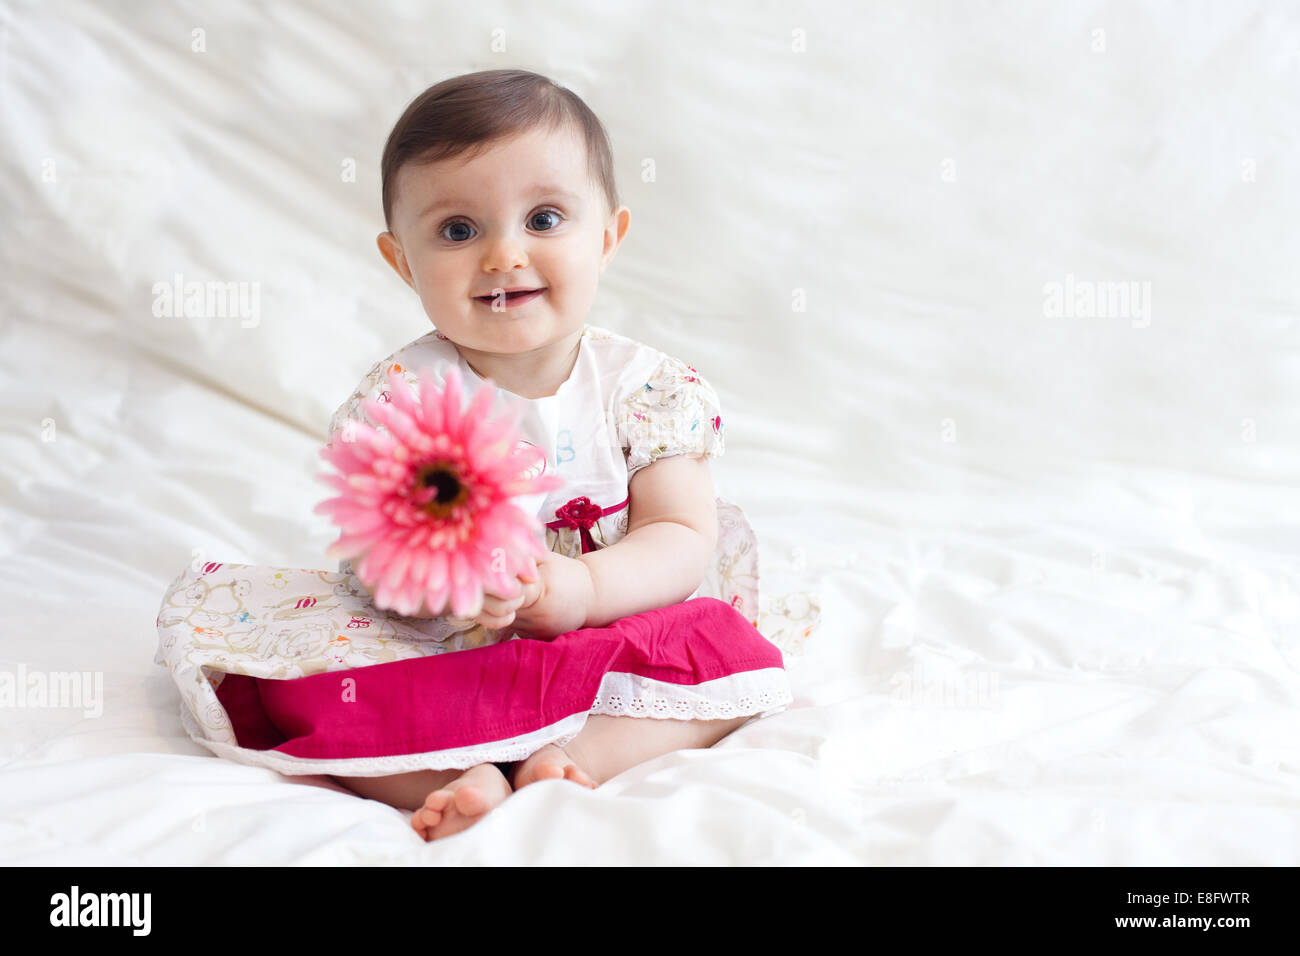 cute baby stock photos & cute baby stock images - alamy